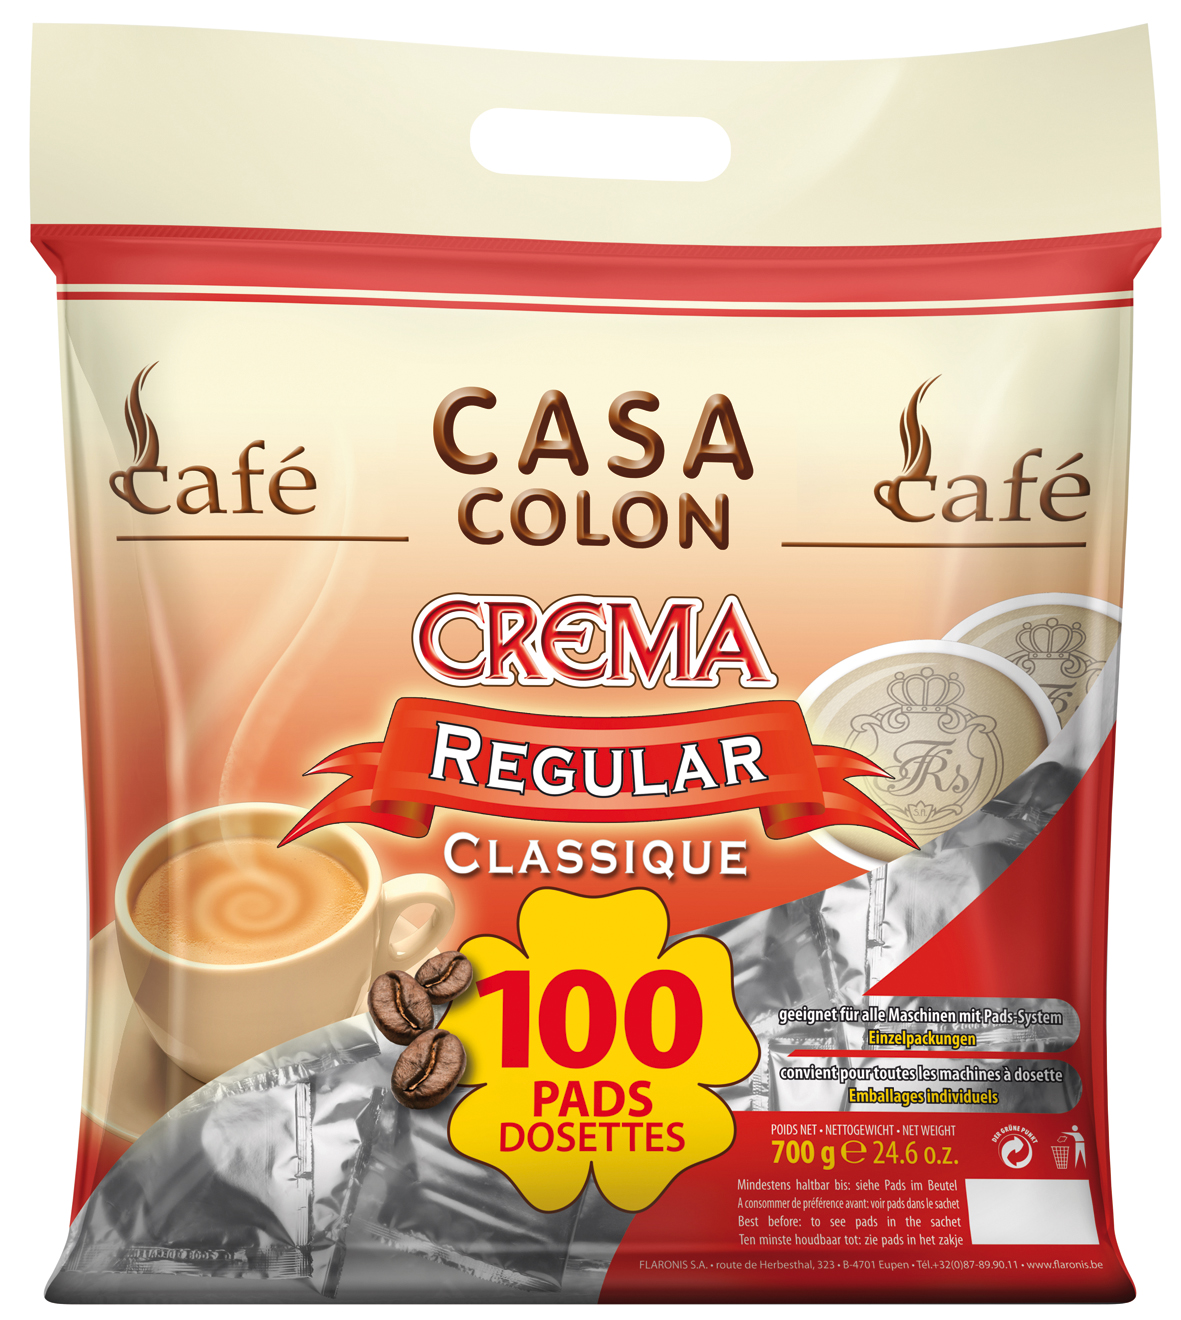 518N-Casa Colon 100 Pads REGULAR klein.jpg